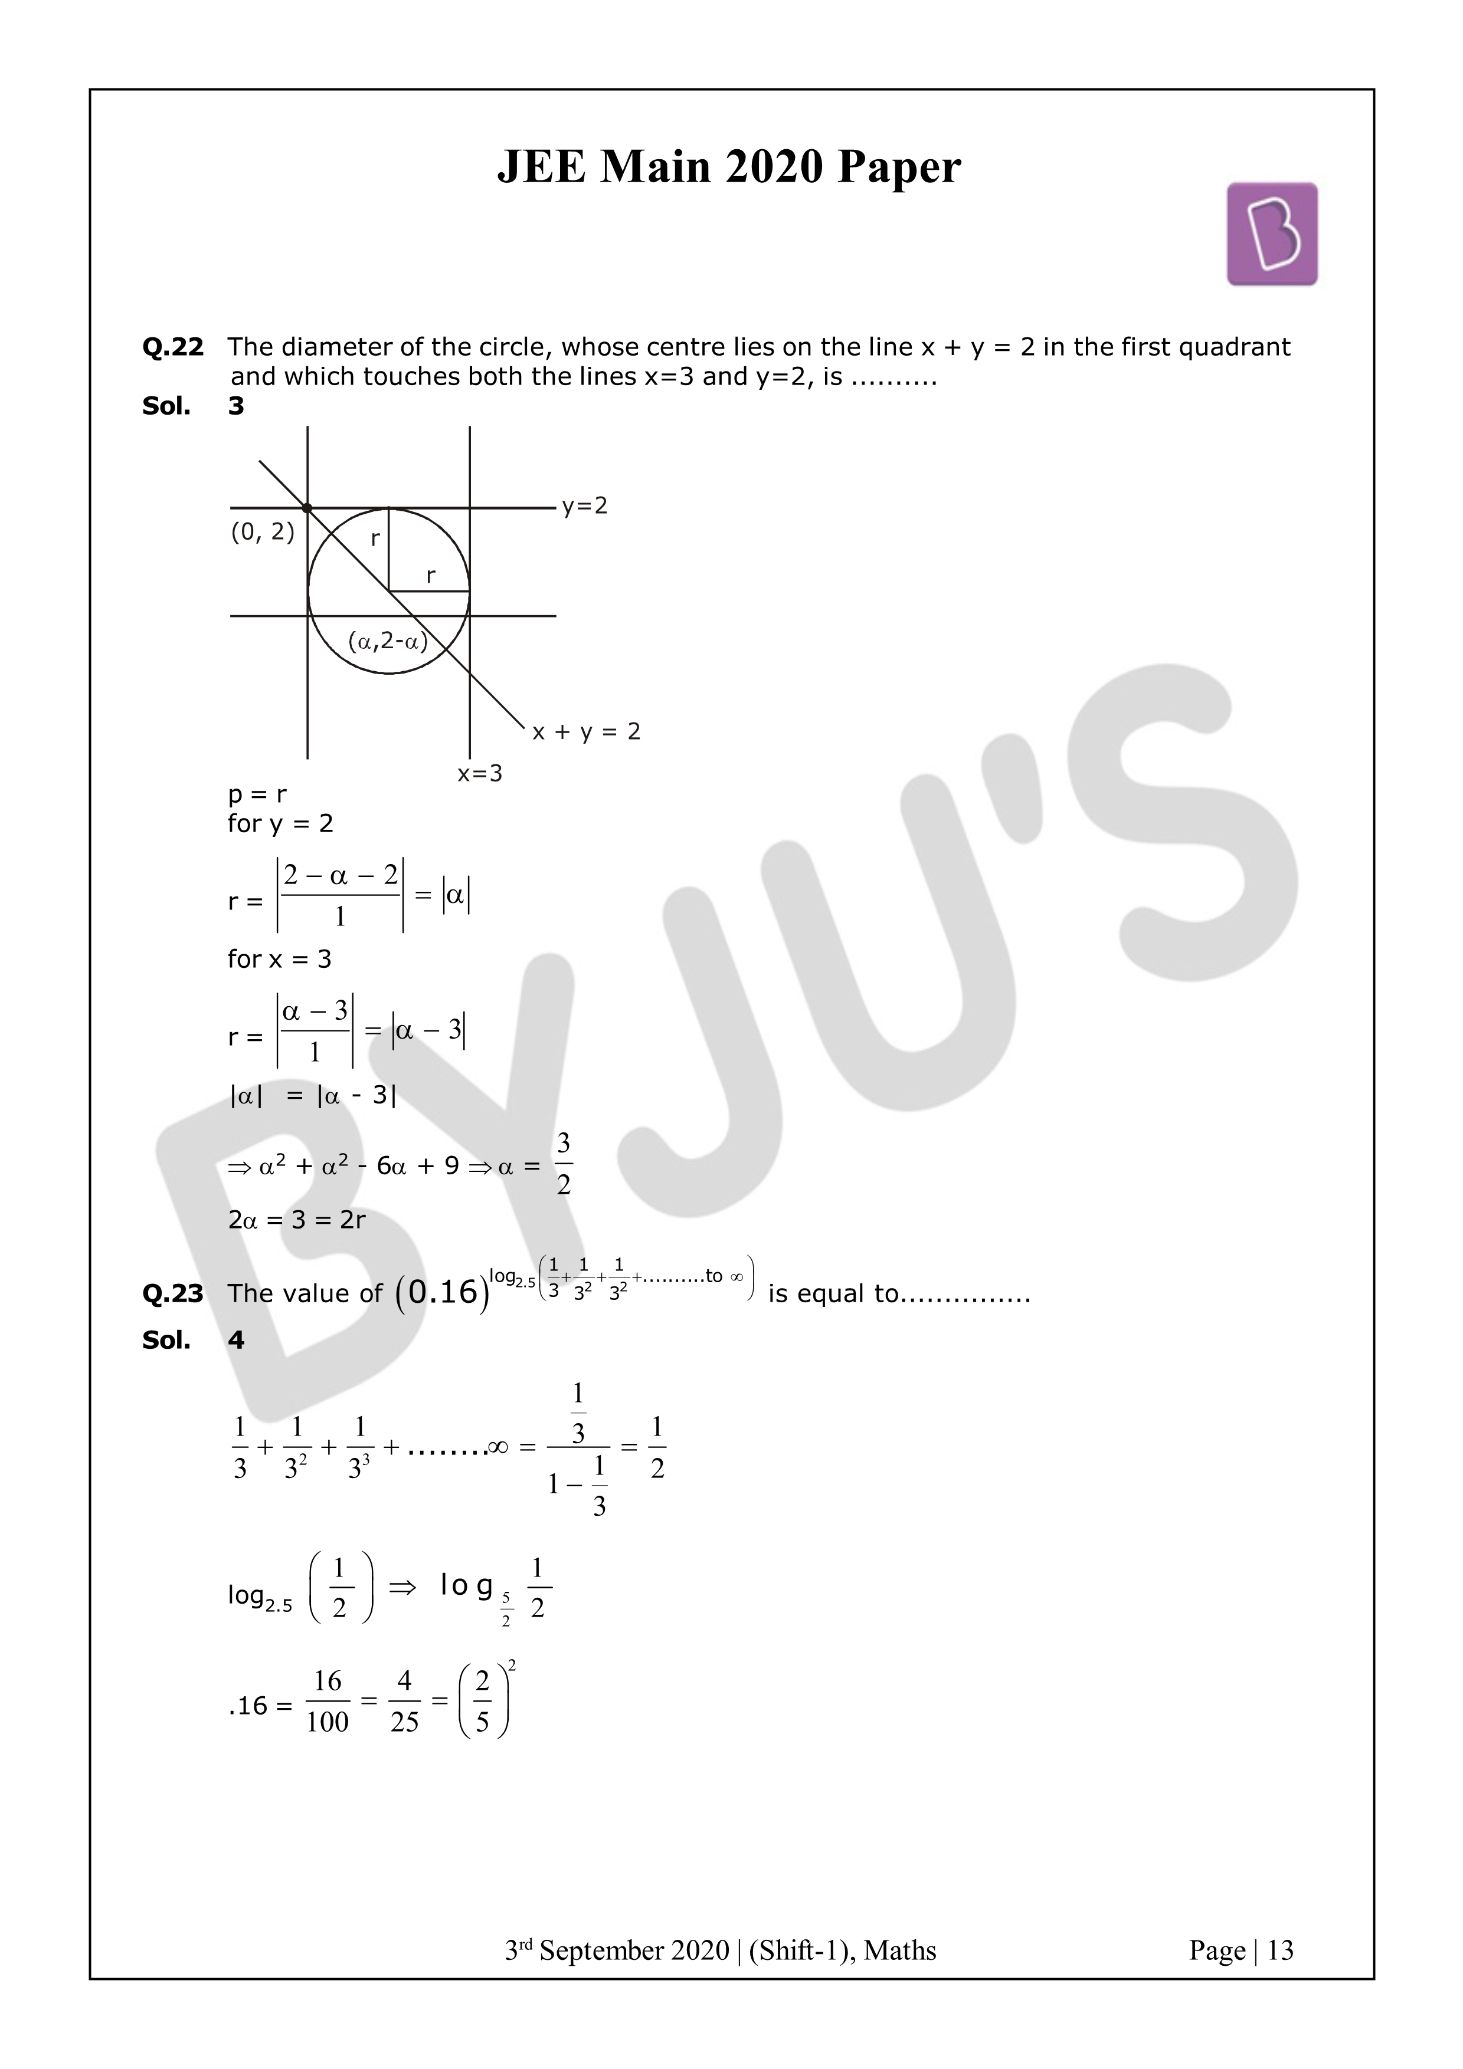 JEE Main 2020 Paper With Solutions Maths Shift 1 (Sept 3